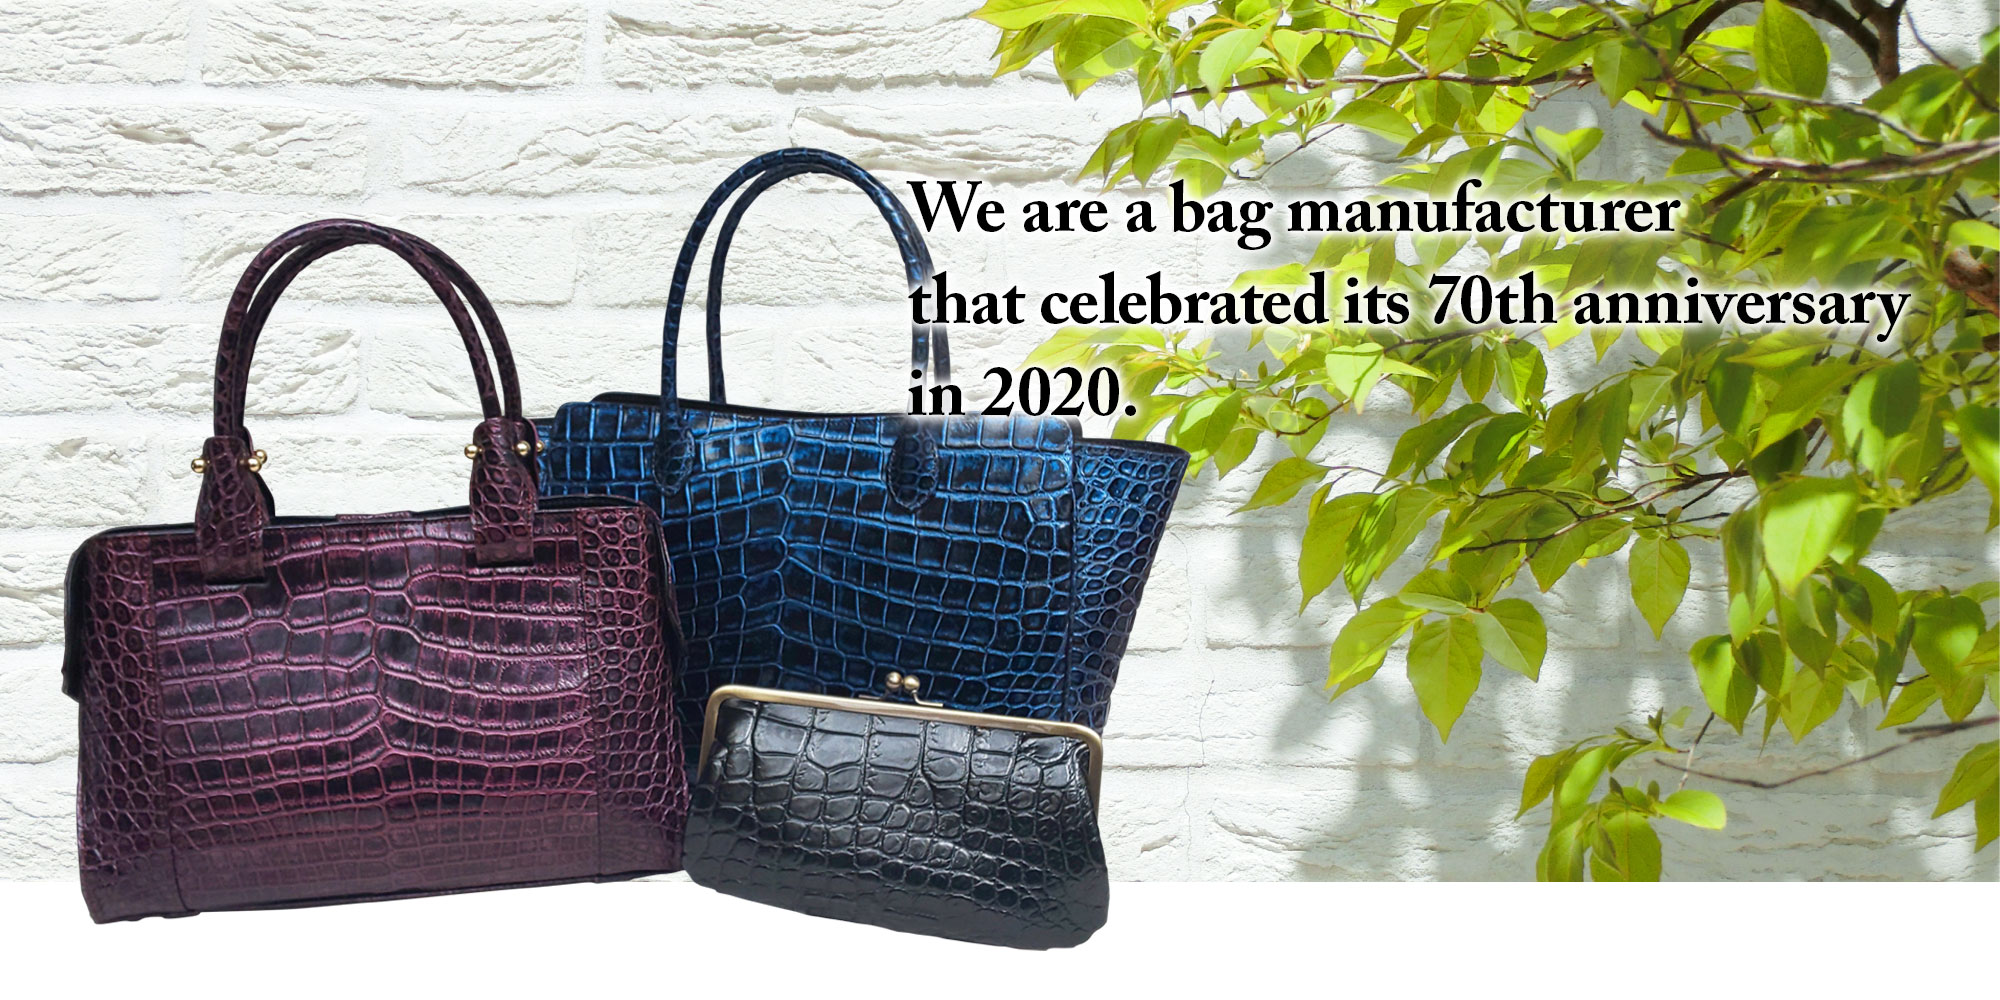 We are a bag manufacturer that celebrated its 70th anniversary in 2020.